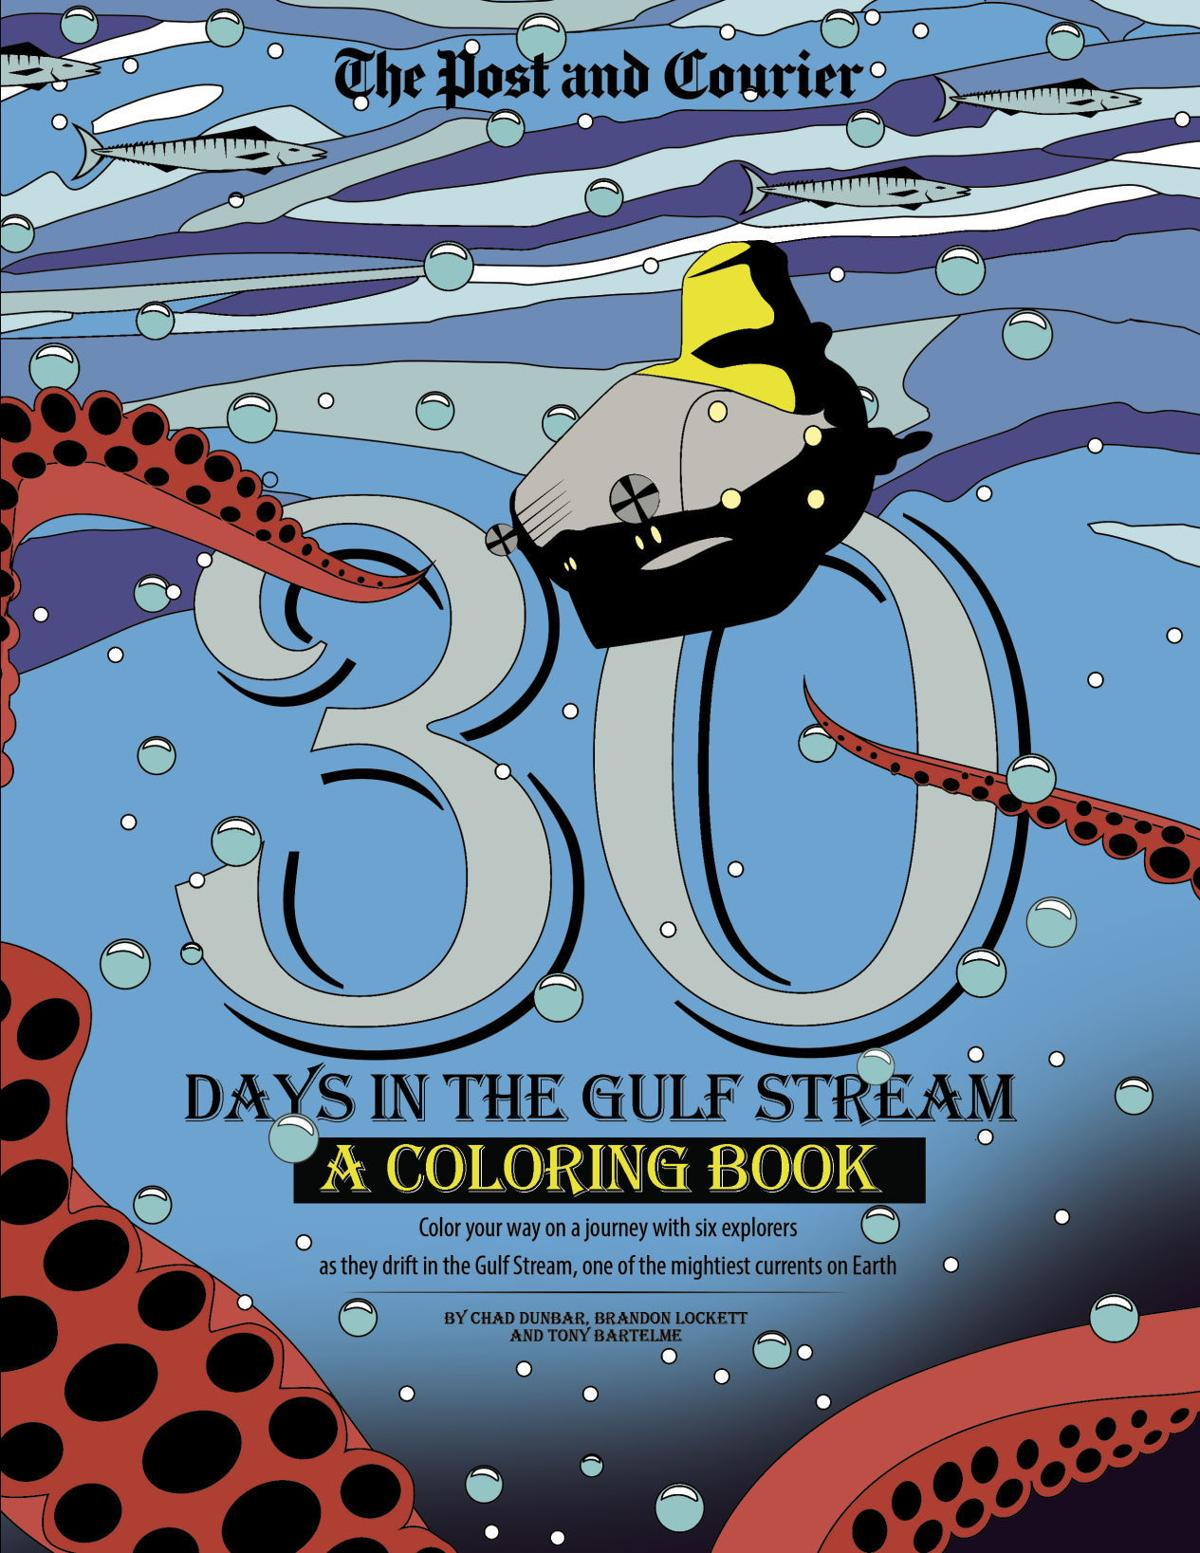 Days in the Gulf Stream: A coloring book